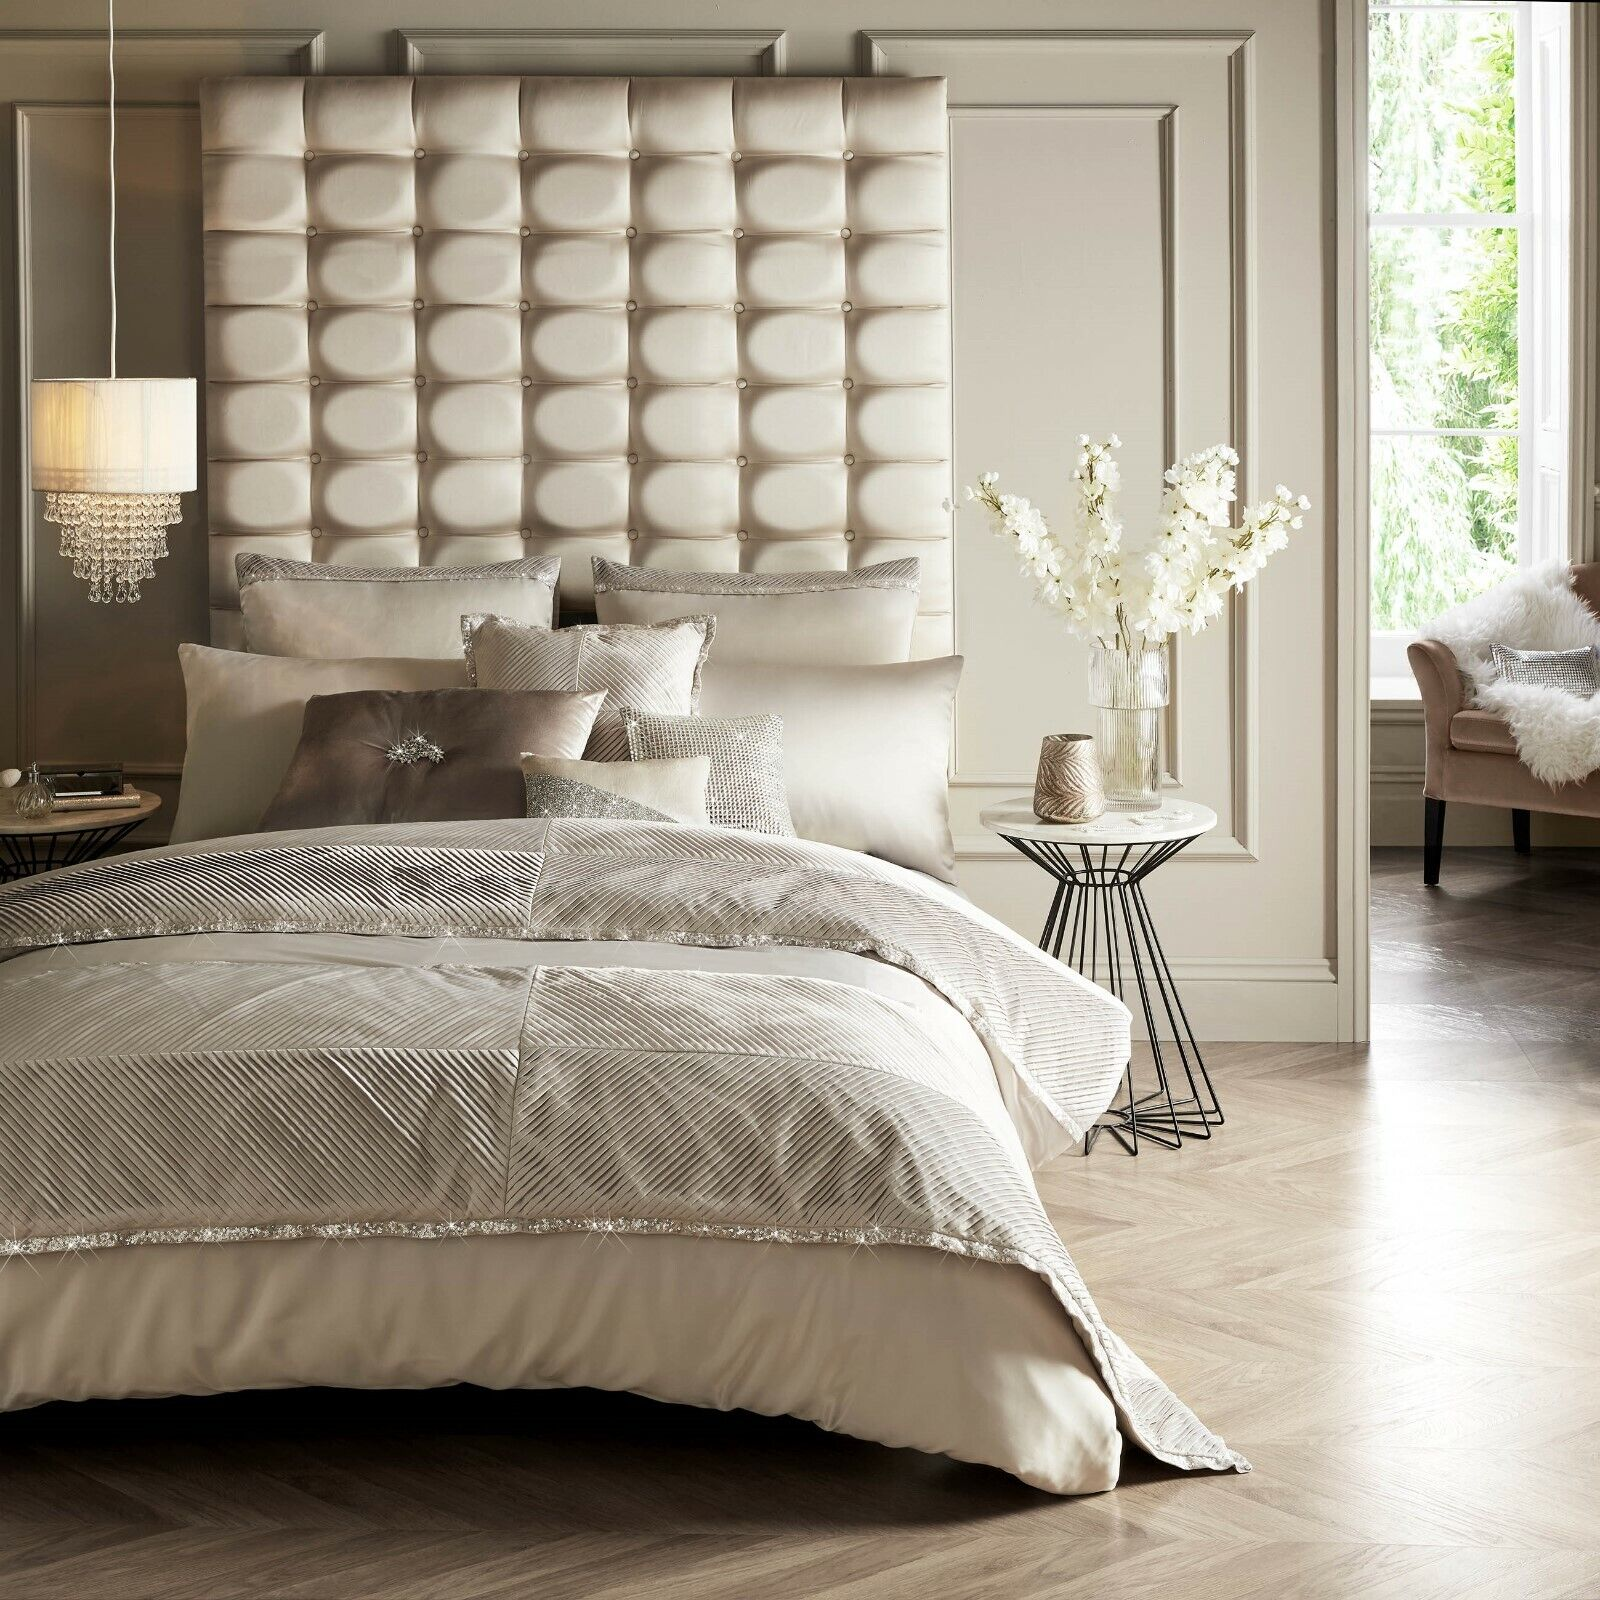 Kylie Minogue Bedding ZINA Praline Comforter   Duvet Cover, Cushions or Throw